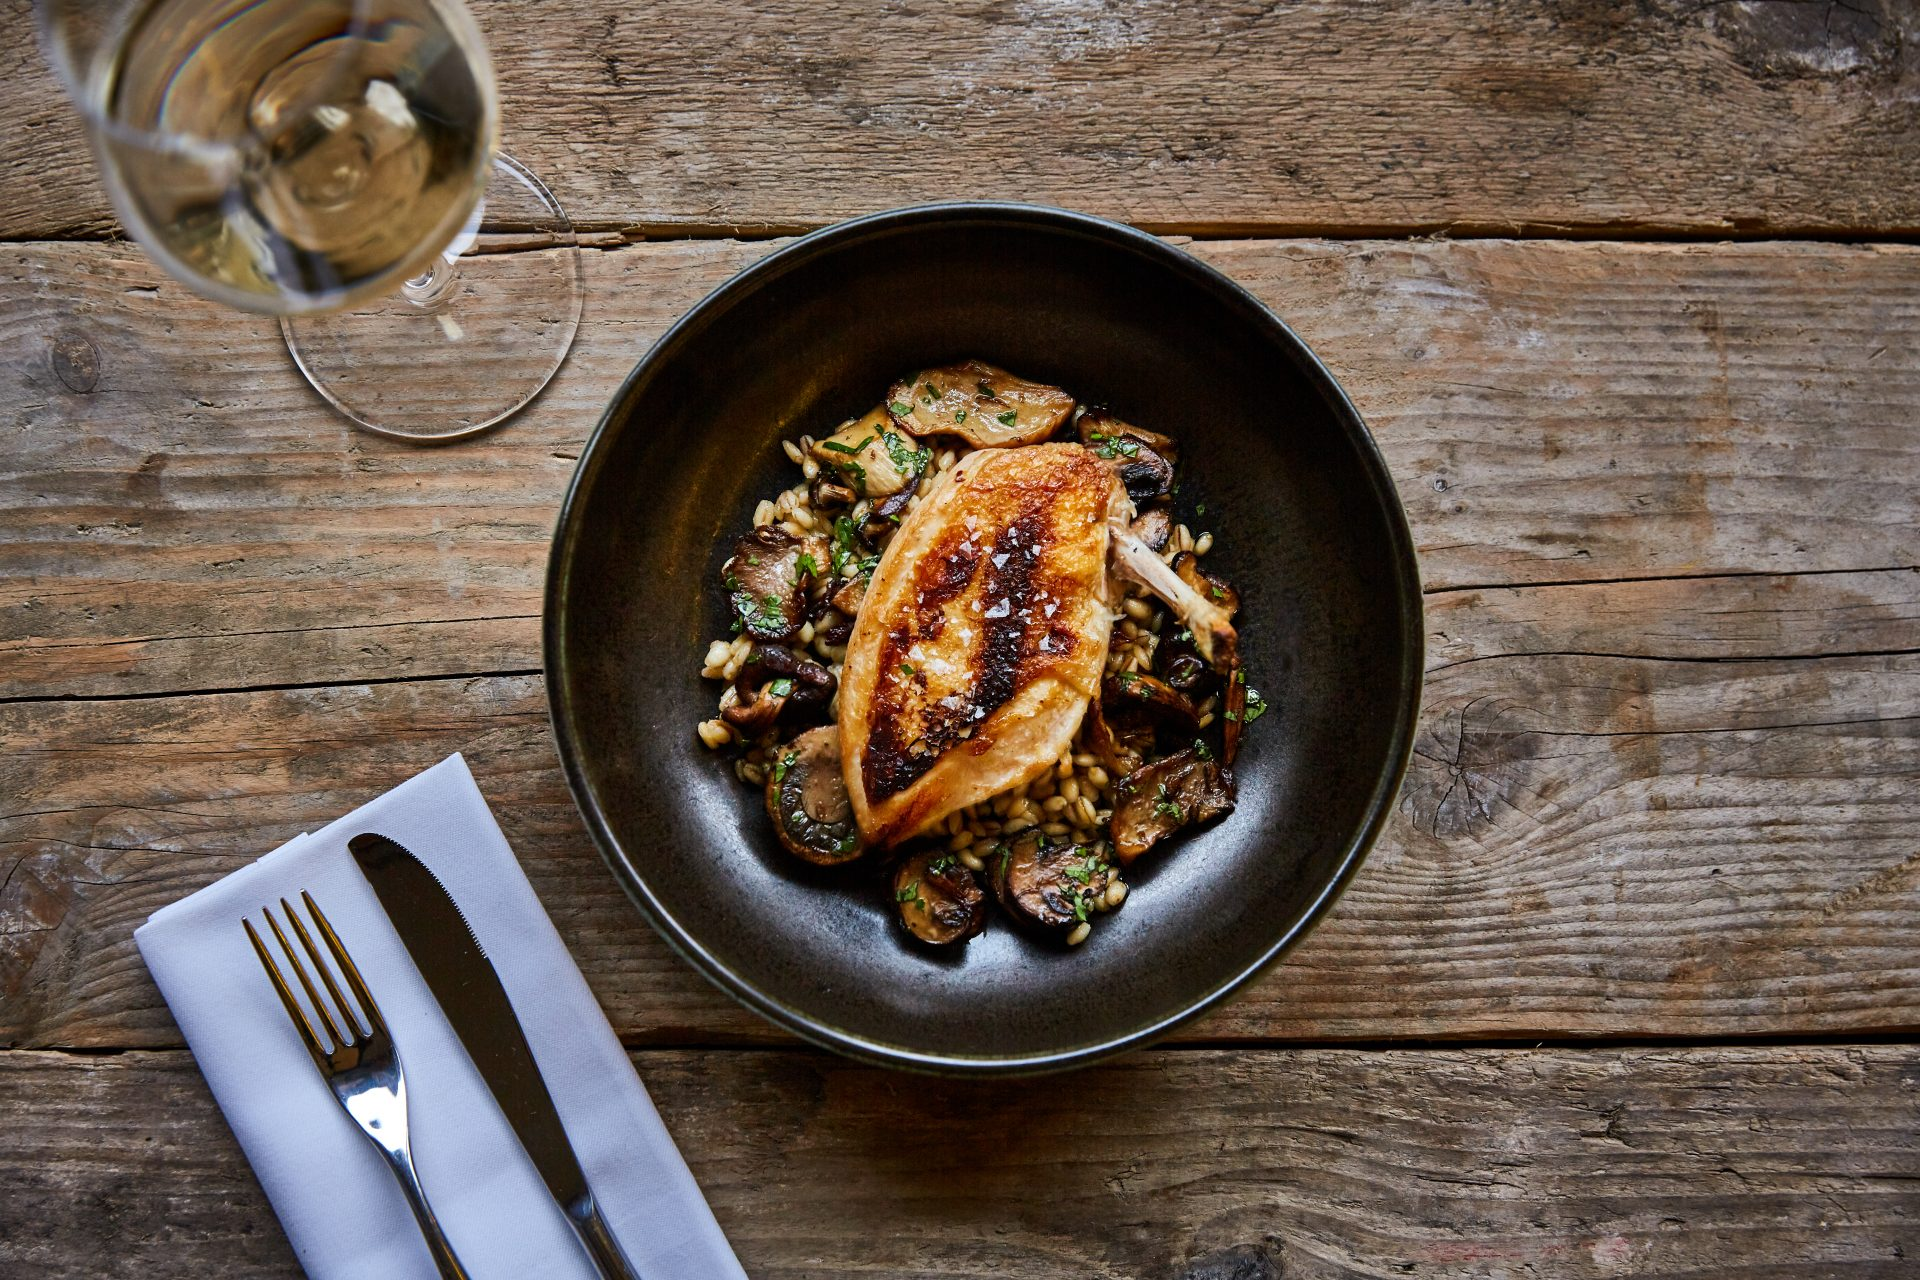 Roasted chicken breast with wild mushrooms and pearl barley